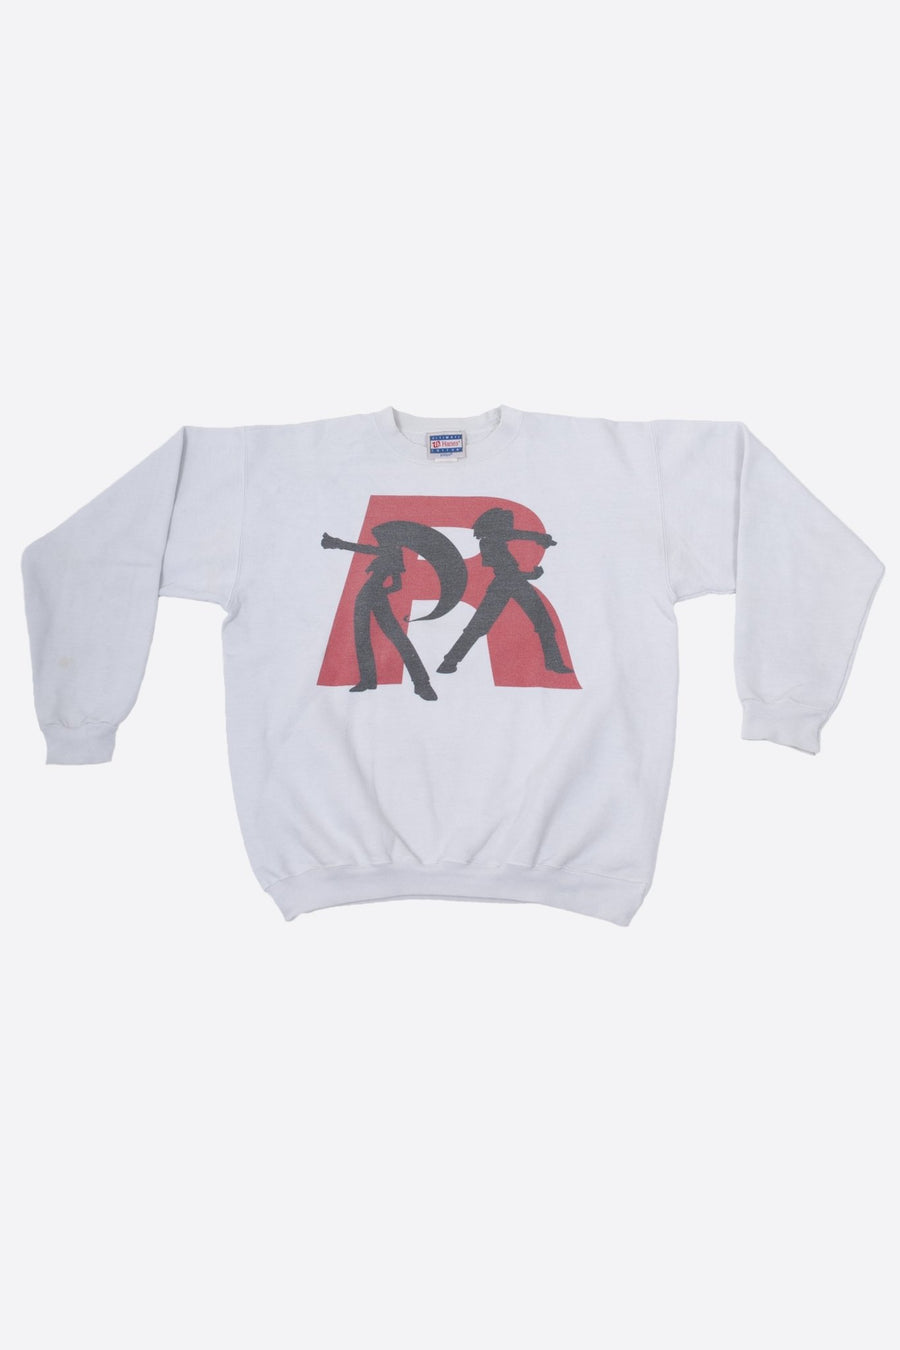 Crewneck Team Rocket - WASTED PARIS